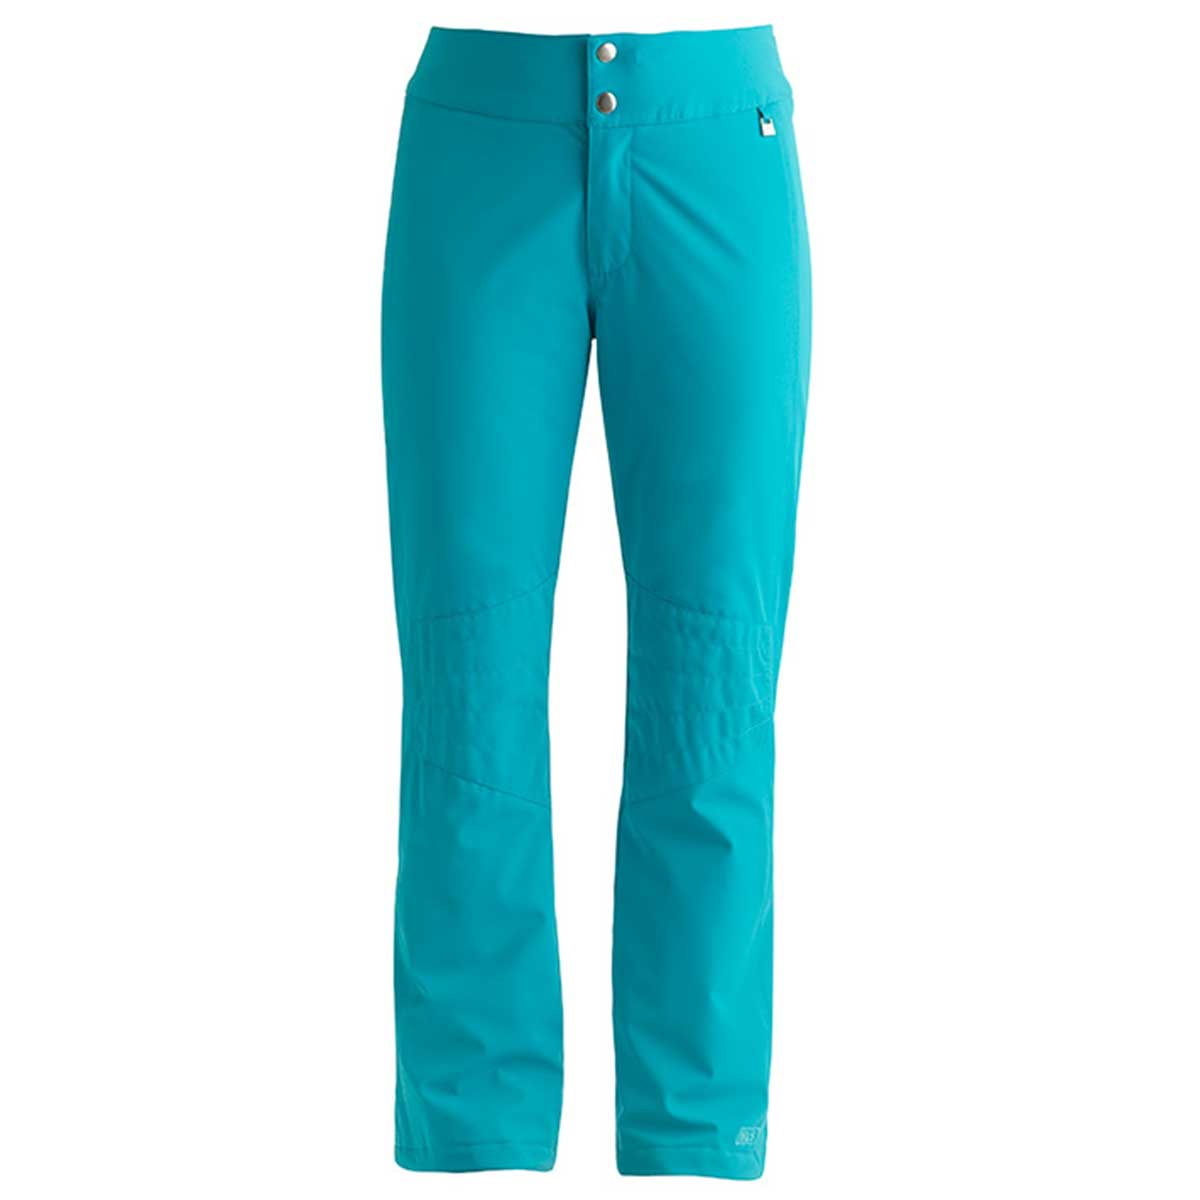 NILS Dominique 2.0 pant in Aqua